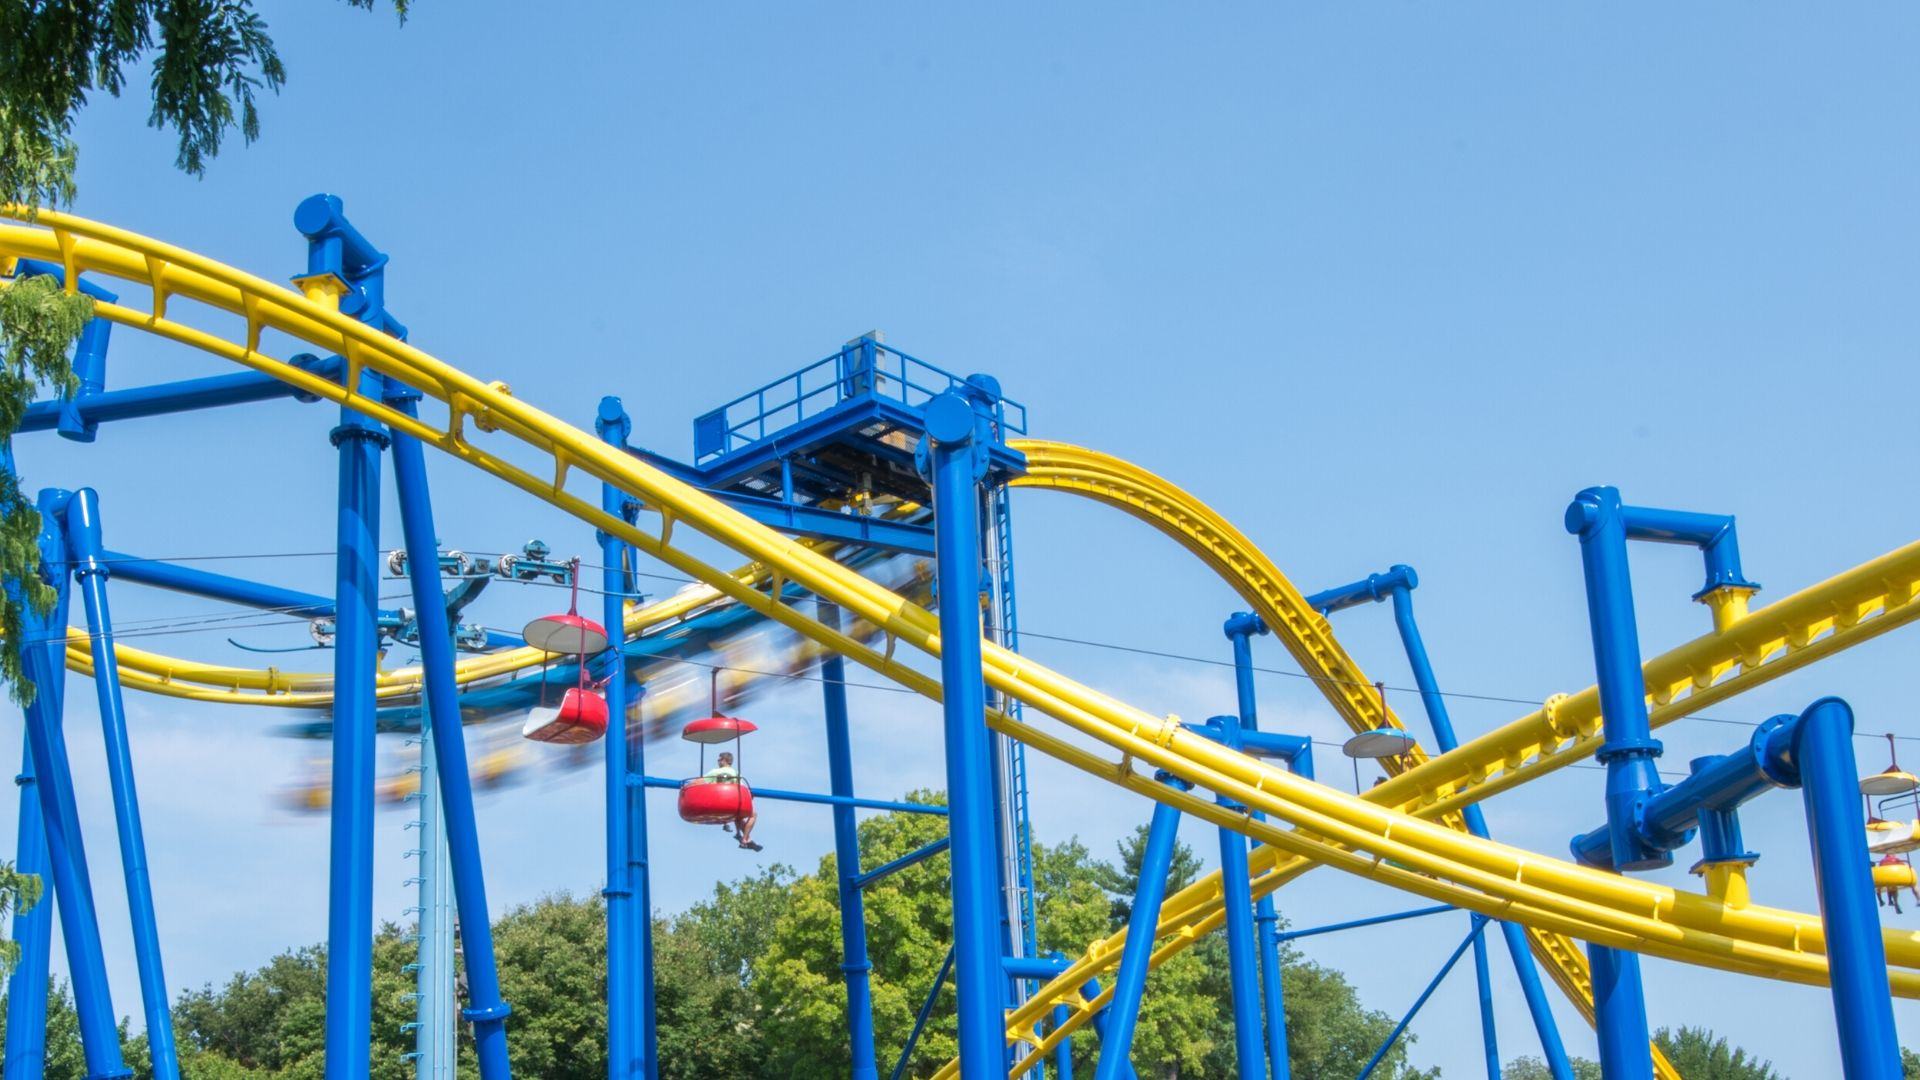 Wide photo of yellow and blue roller coaster with sky ride gondolas passing below it